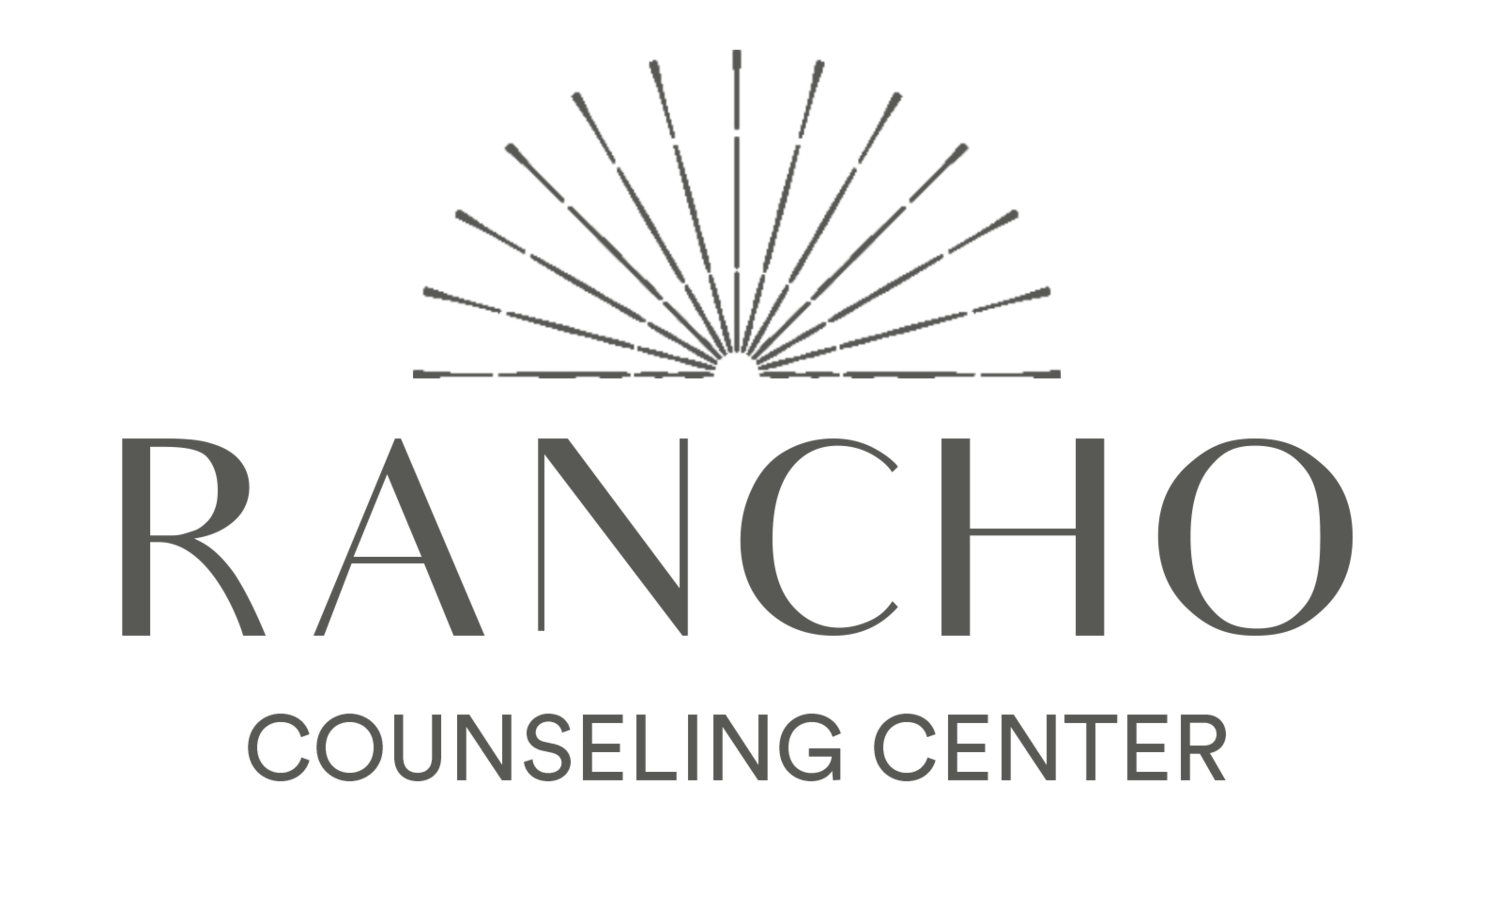 Rancho Counseling Center